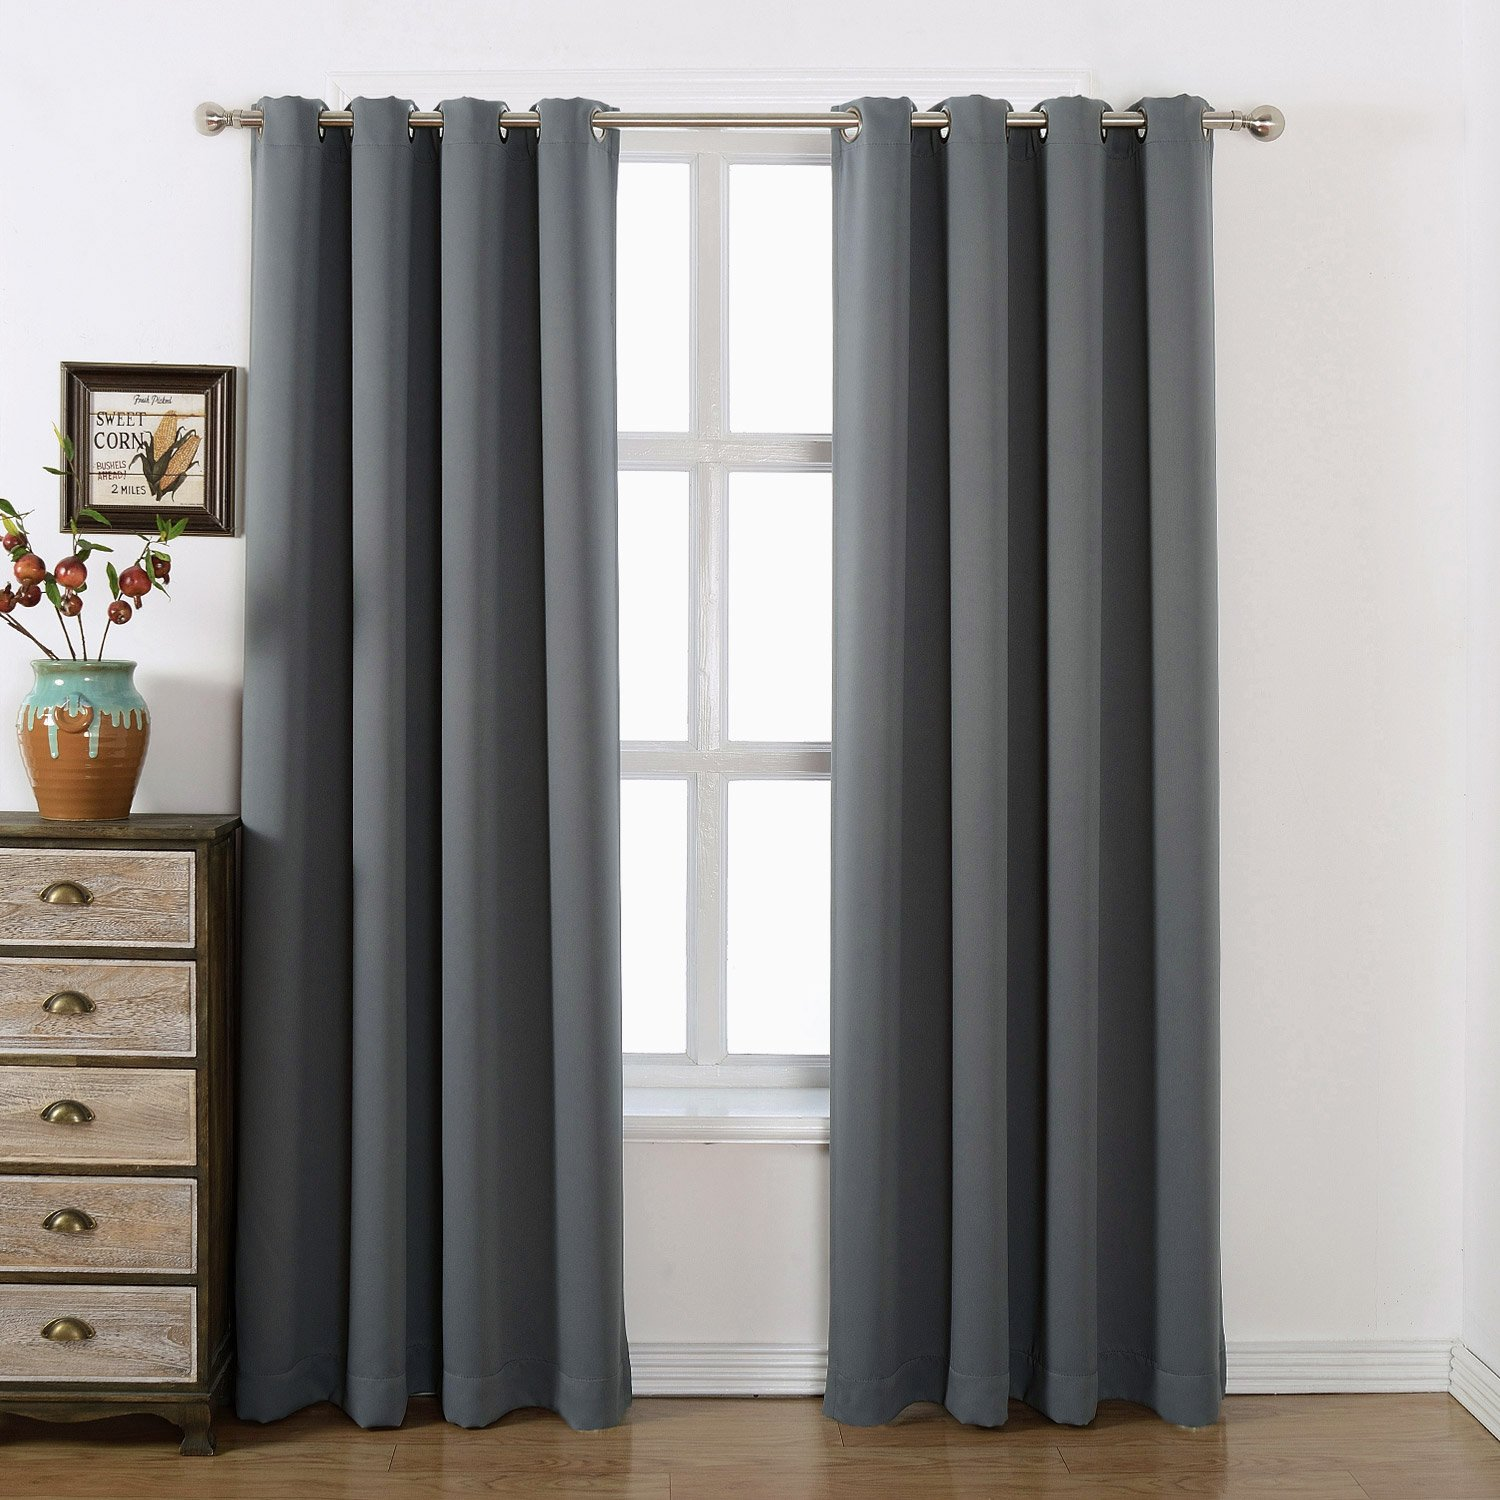 Cafe curtains for bedroom - Amazlinen 52x84 Inch Grommet Top Blackout Curtains With Tie Back Charcoal Grey Set Of 2